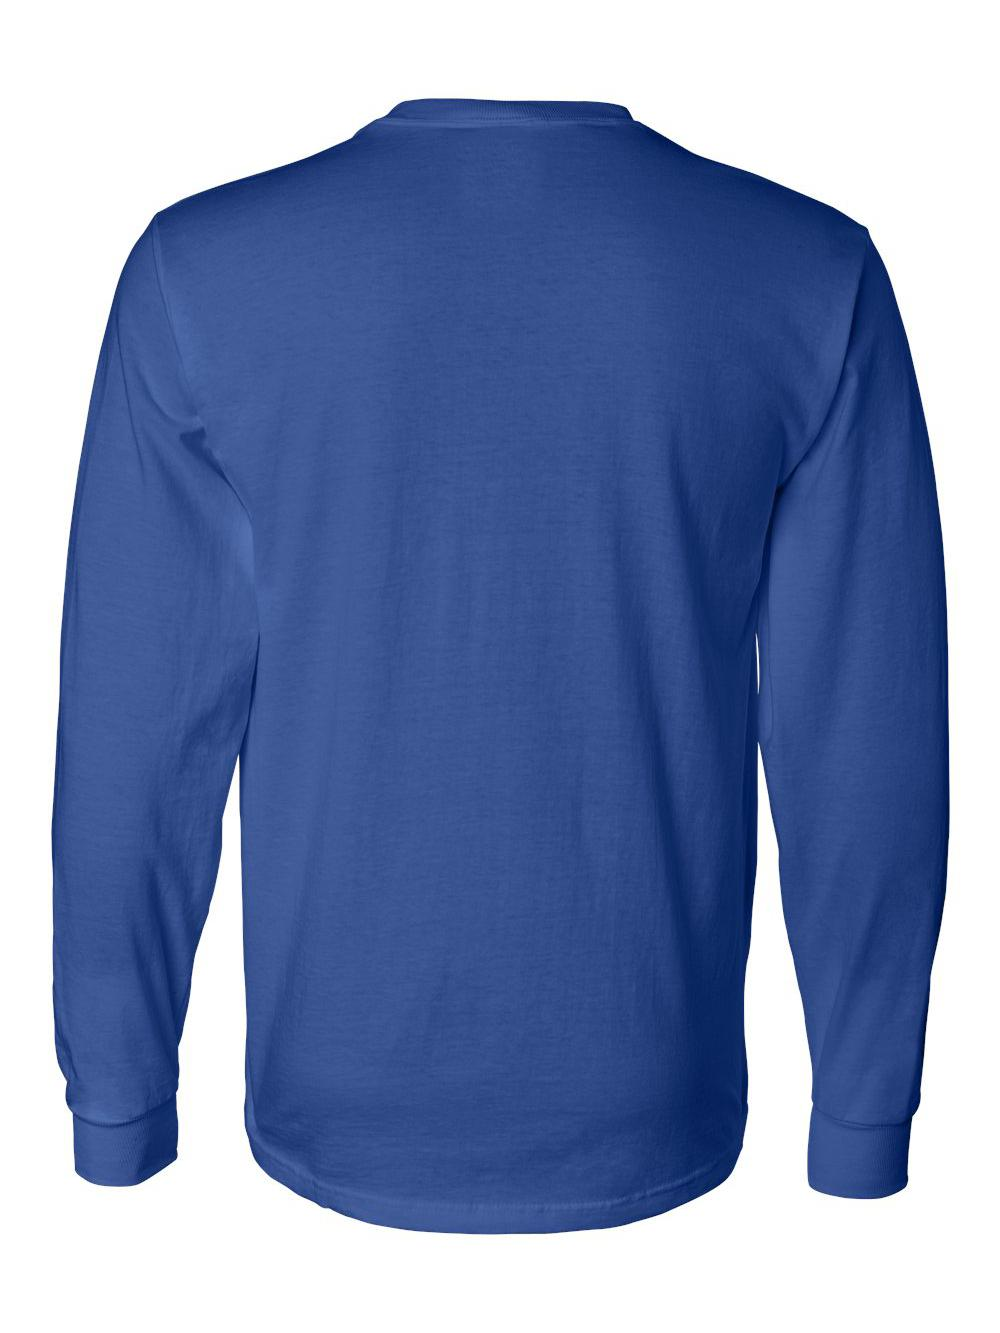 Fruit-of-the-Loom-HD-Cotton-Long-Sleeve-T-Shirt-4930R thumbnail 70